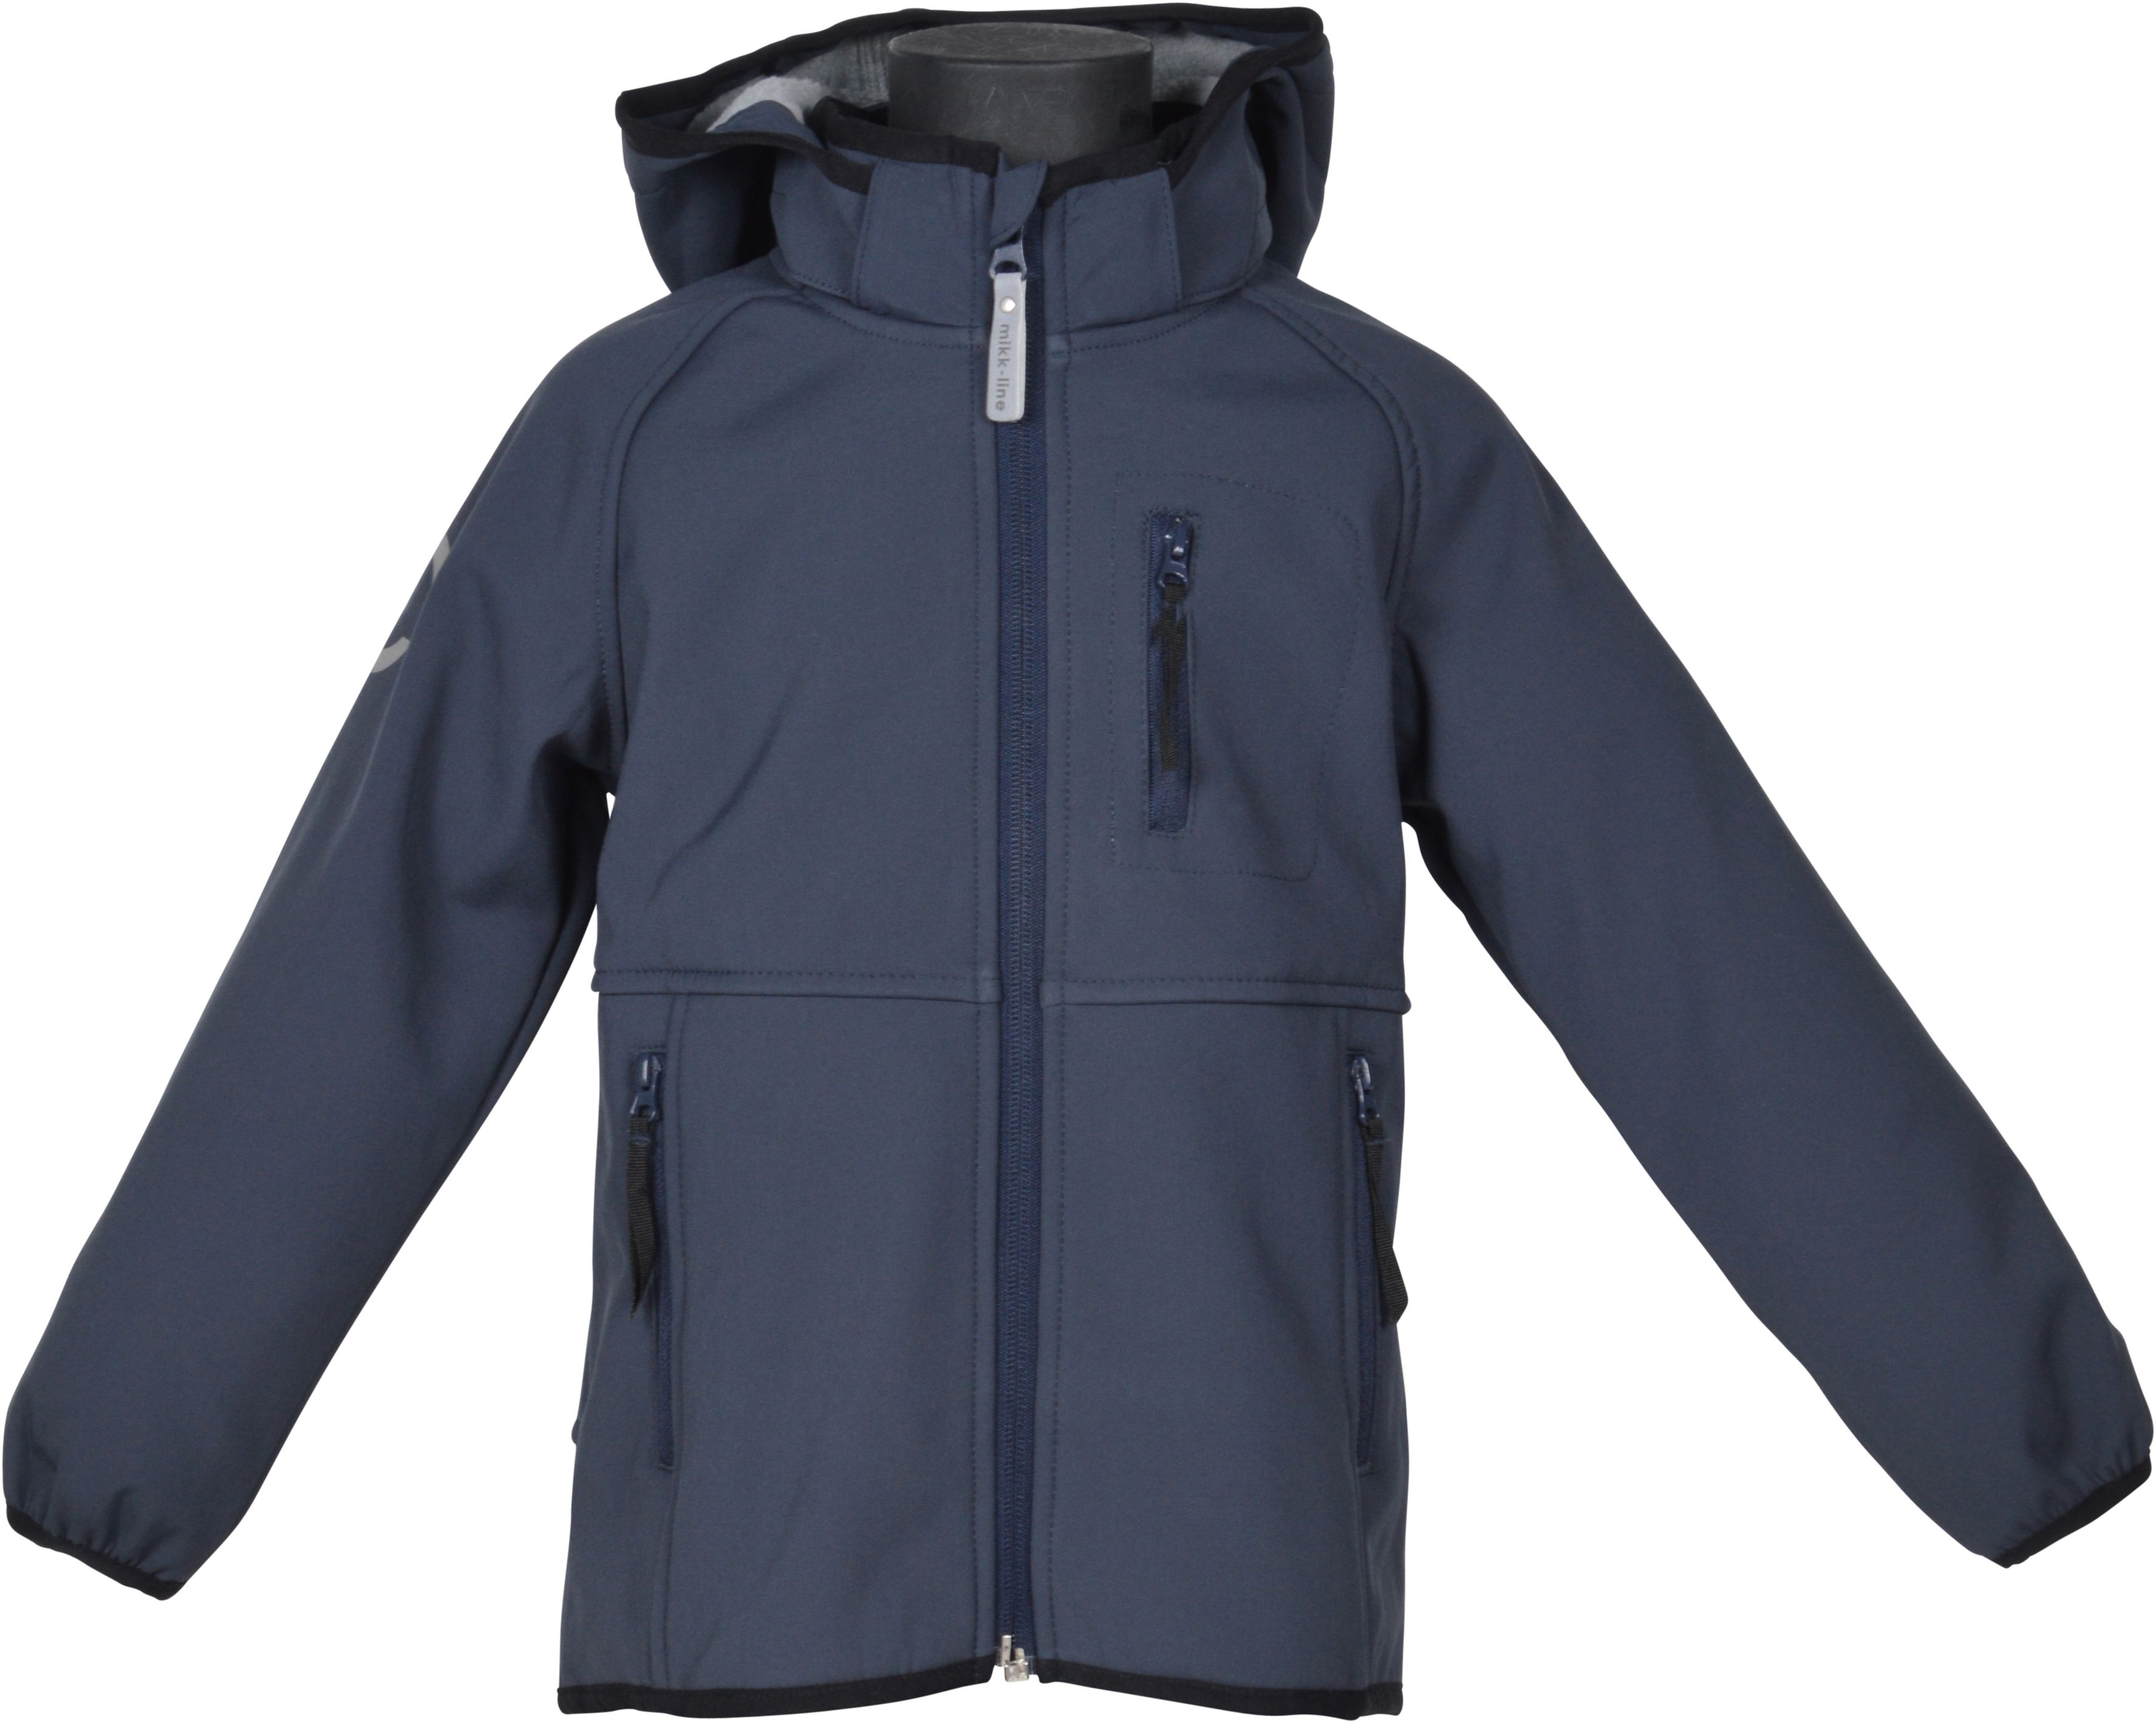 Image of Drengejakke i softshell fra Mikk-Line - Blue Nights (16120-287)